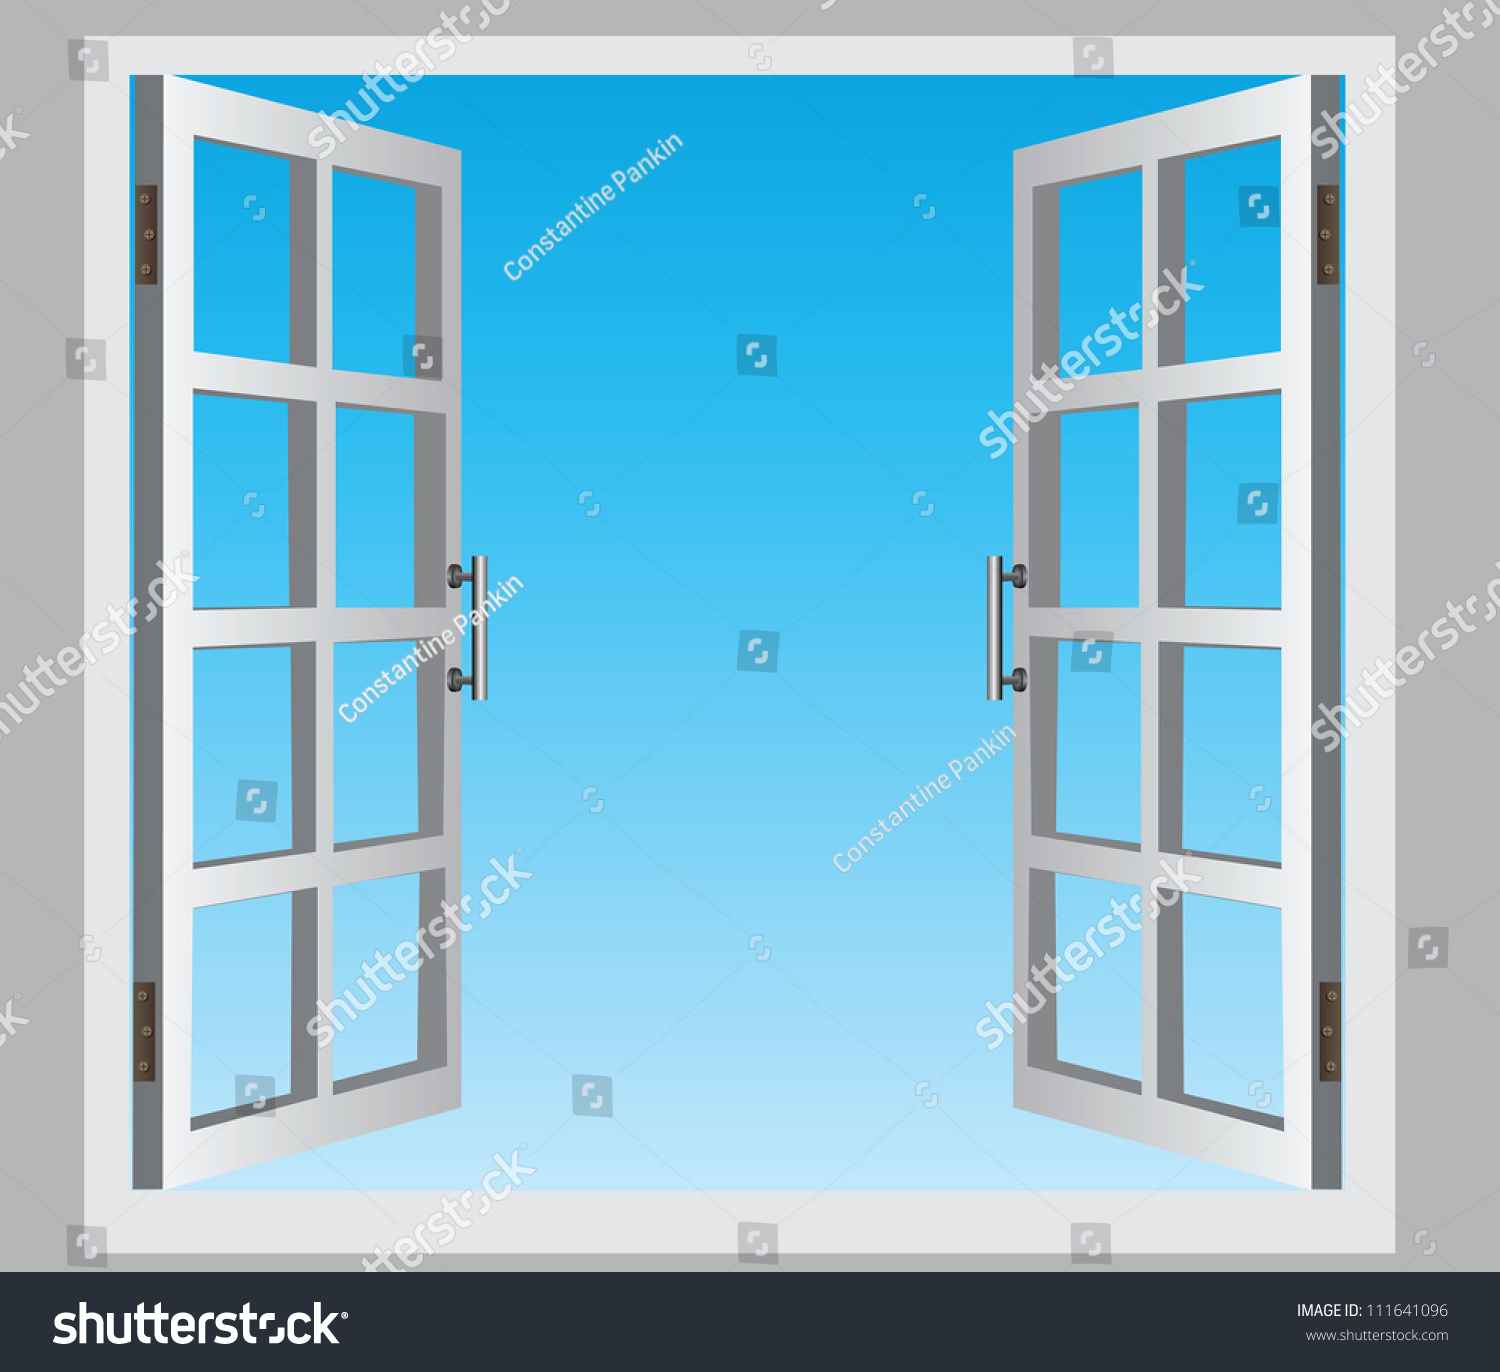 Standard casement window sizes chart image -  0d8dbe The Open Casement Windows The Blue Sky Vector Illustration Hopper Windows Sizes 4235